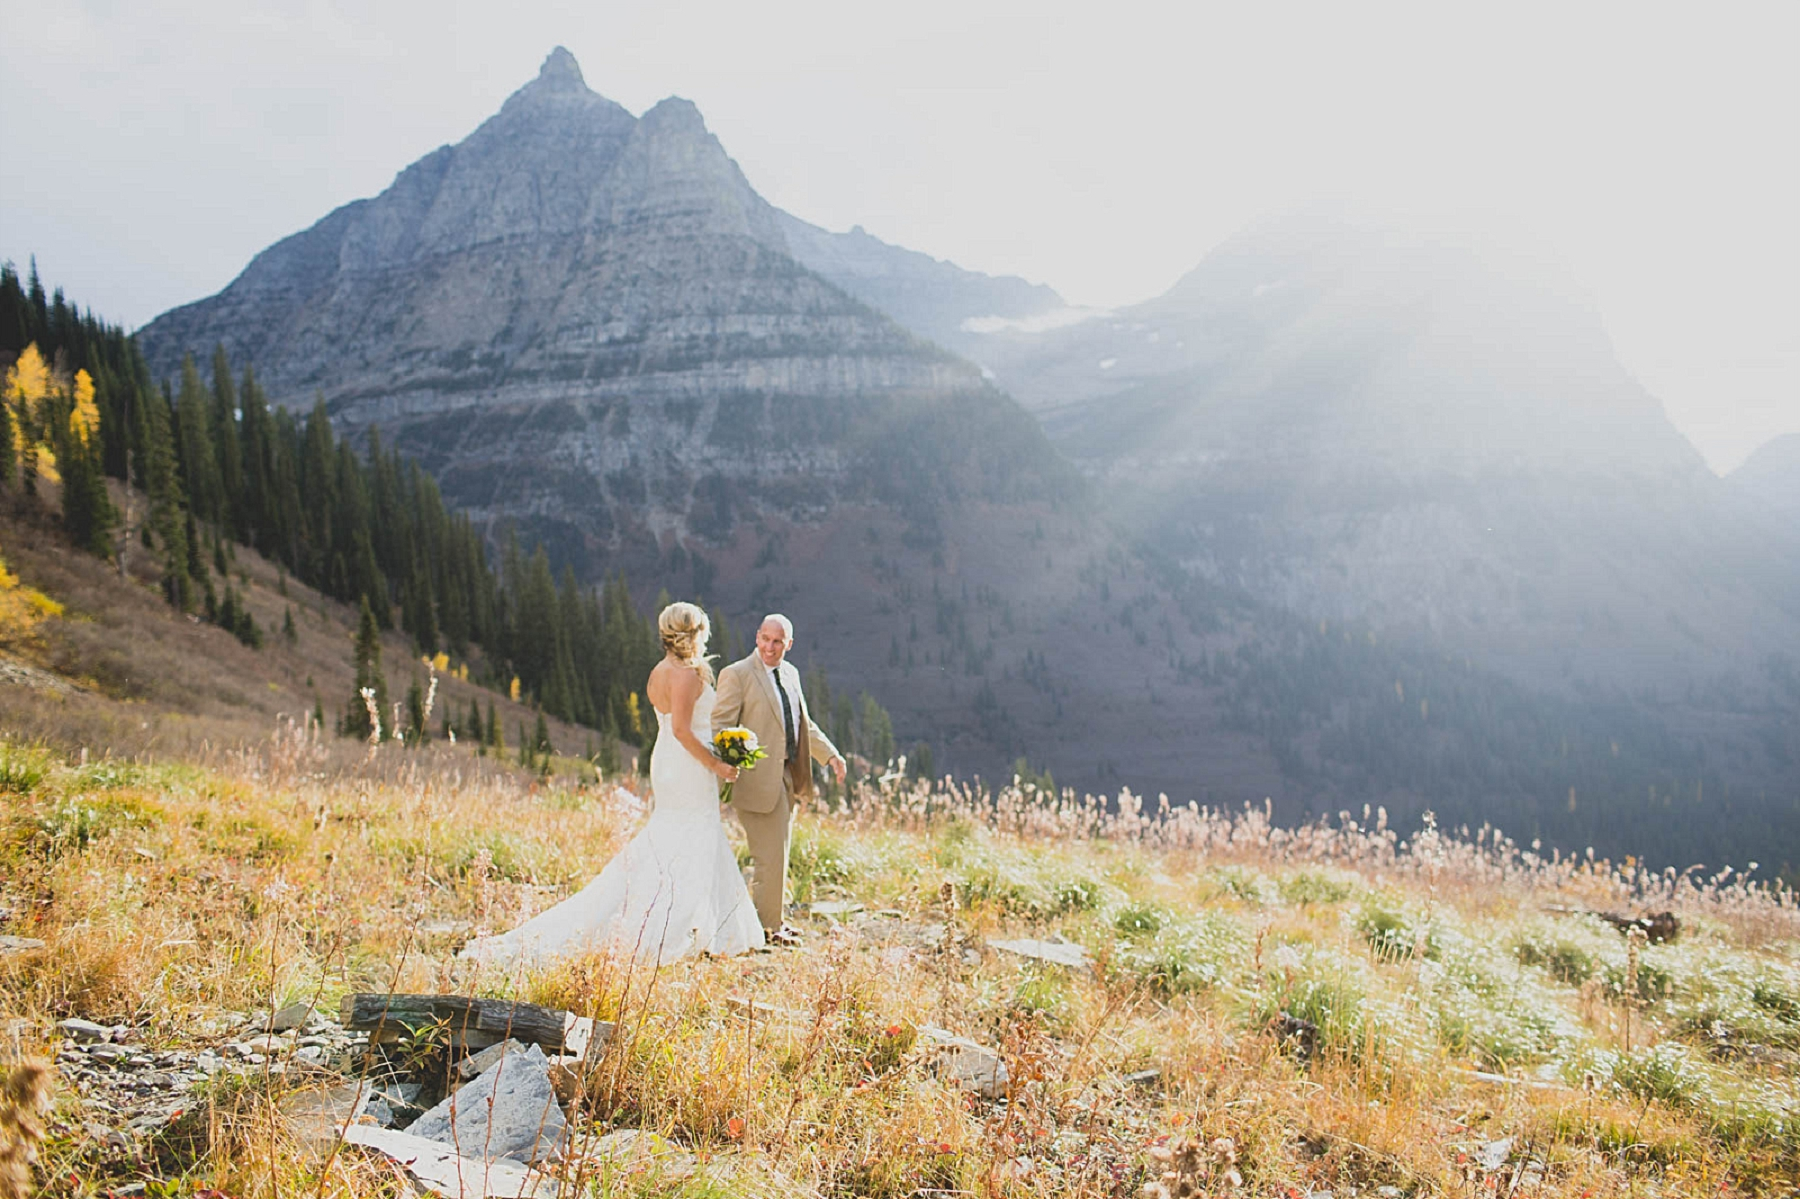 Jennifer_Mooney_photo_day_after_session_glacier_park_elegant_wedding_bride_groom_destination_-37.jpg